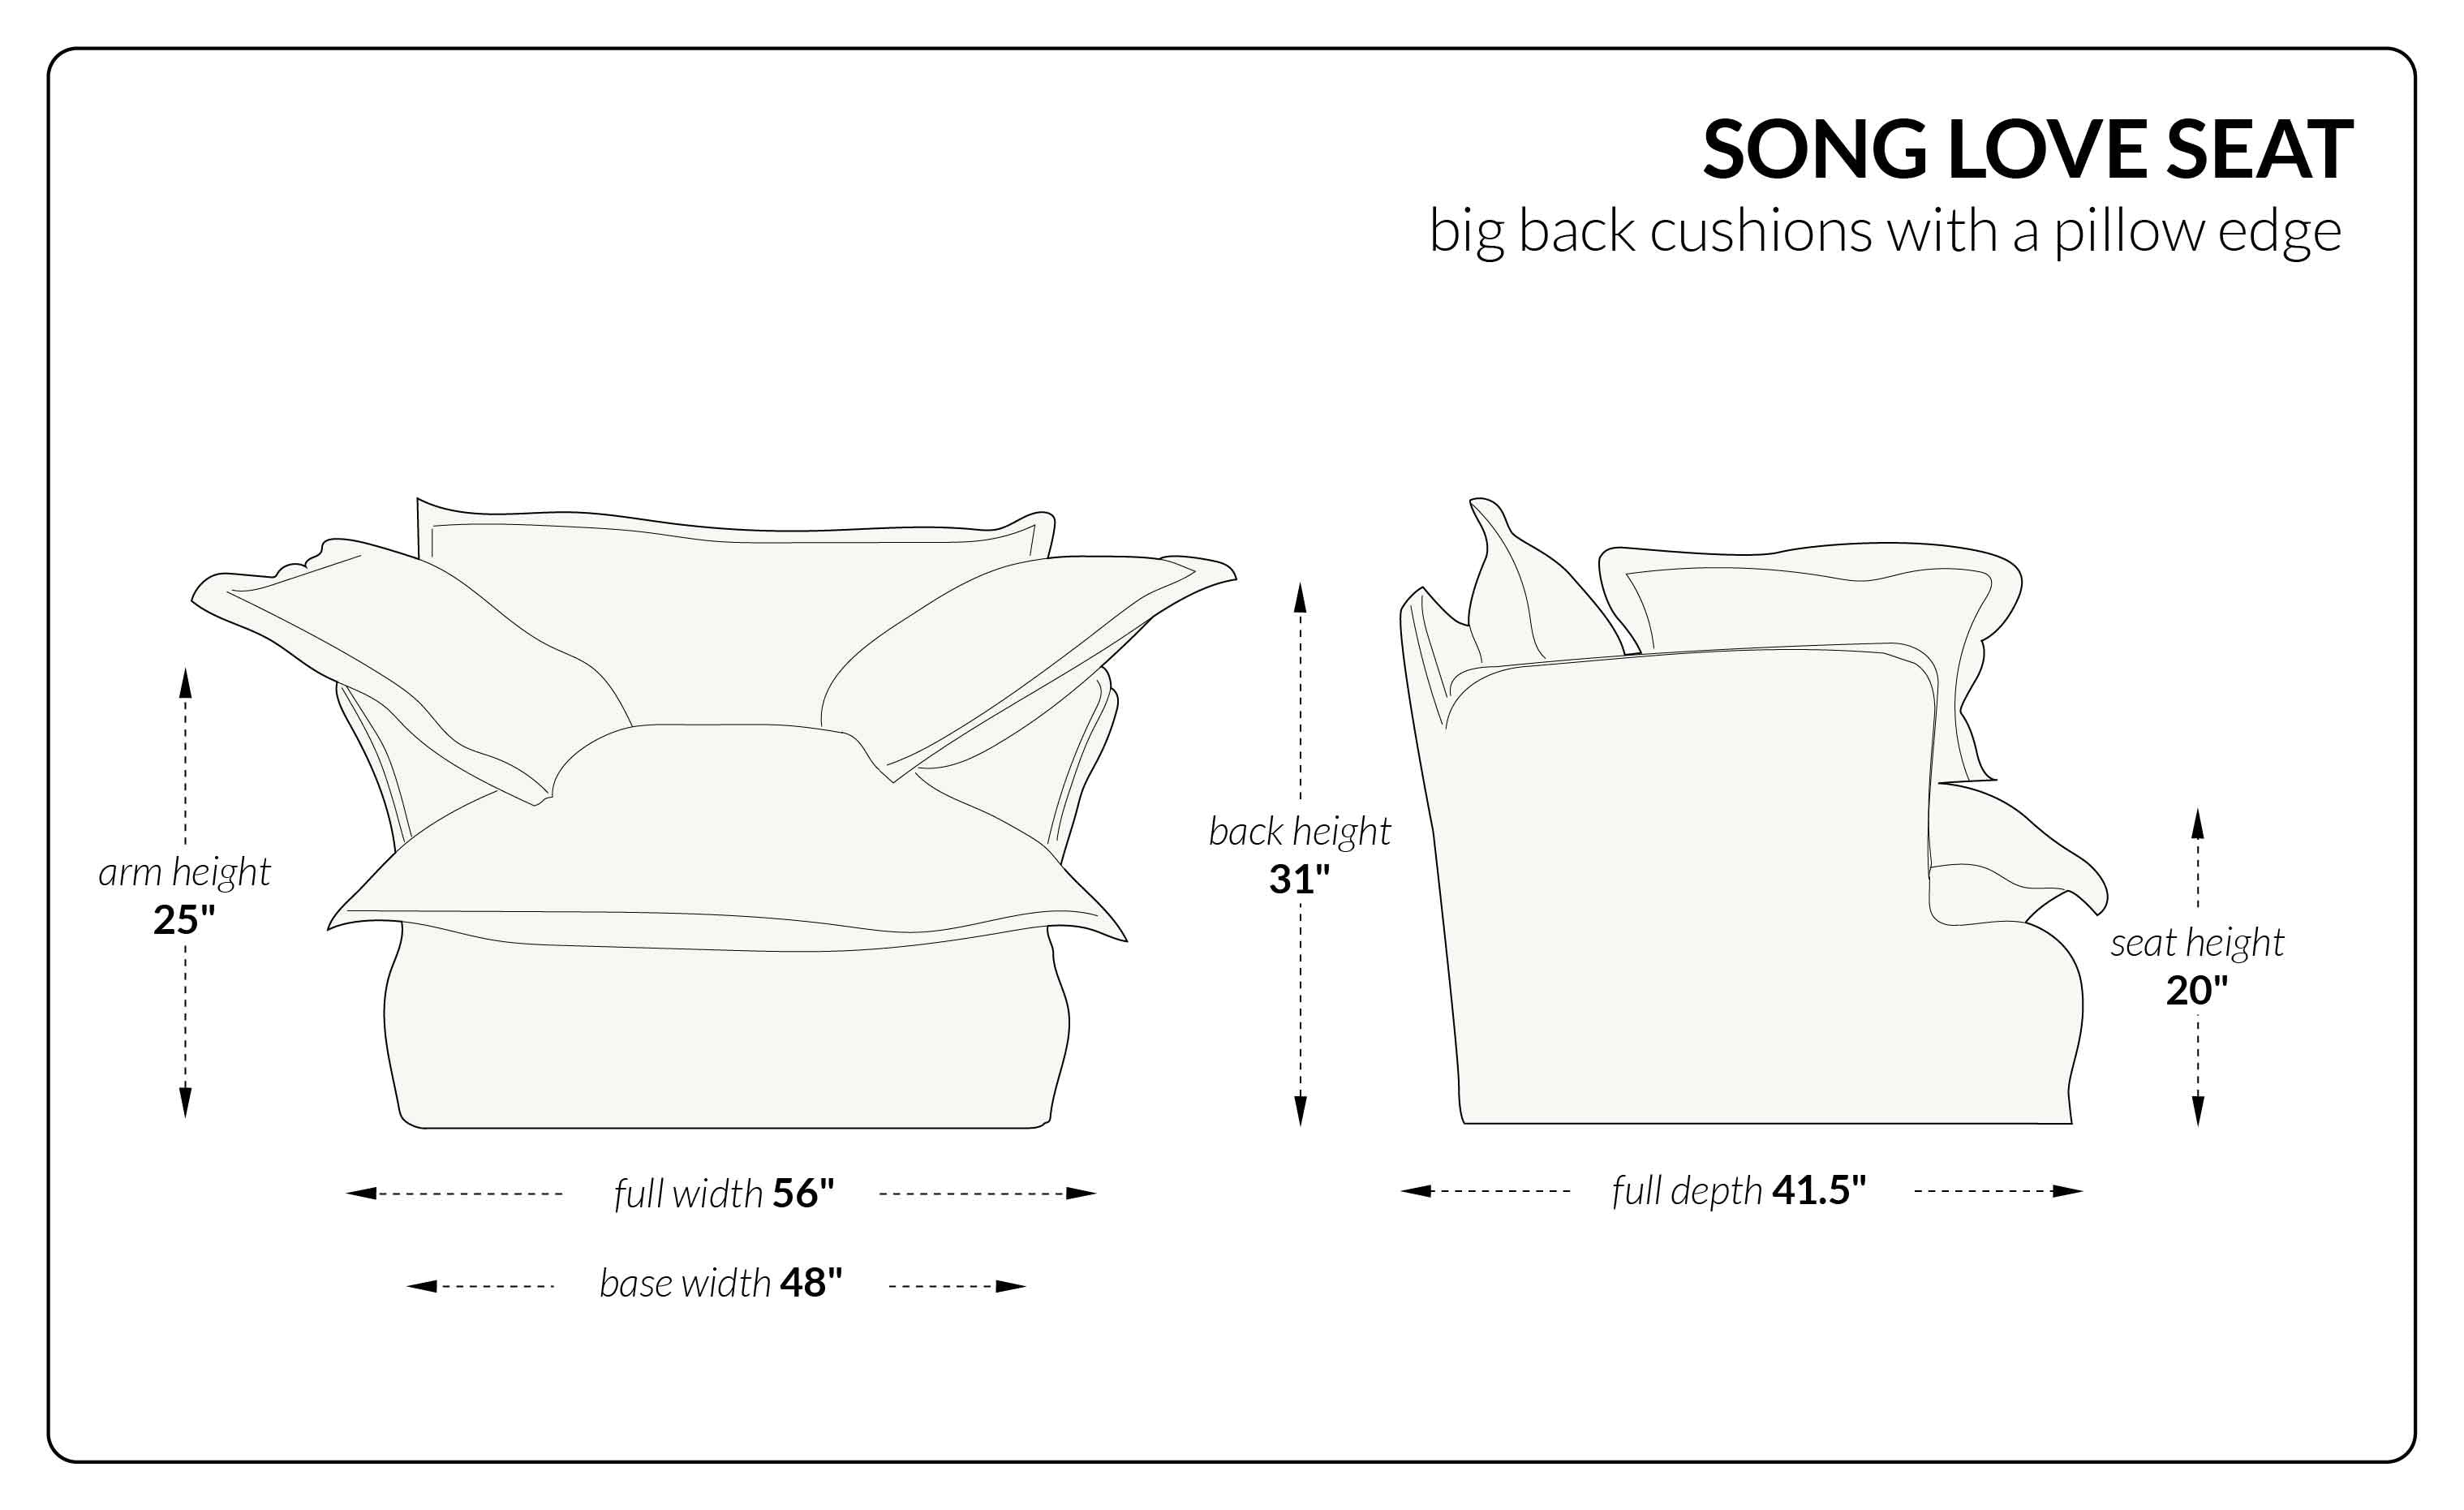 Song Loveseat big